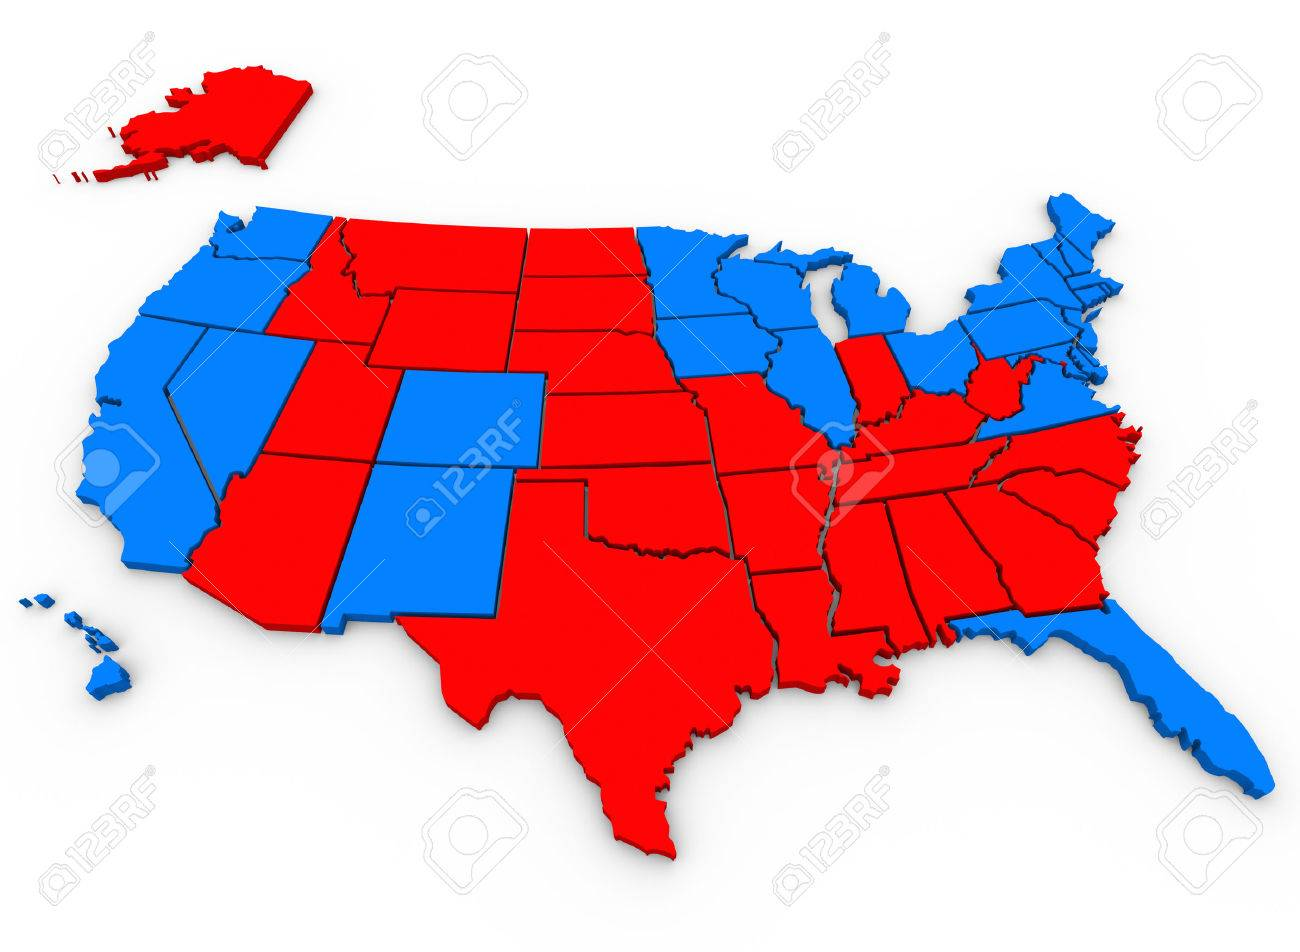 D Rendered Illustrated United States Of America Map Shows The - Us map of red and blue states